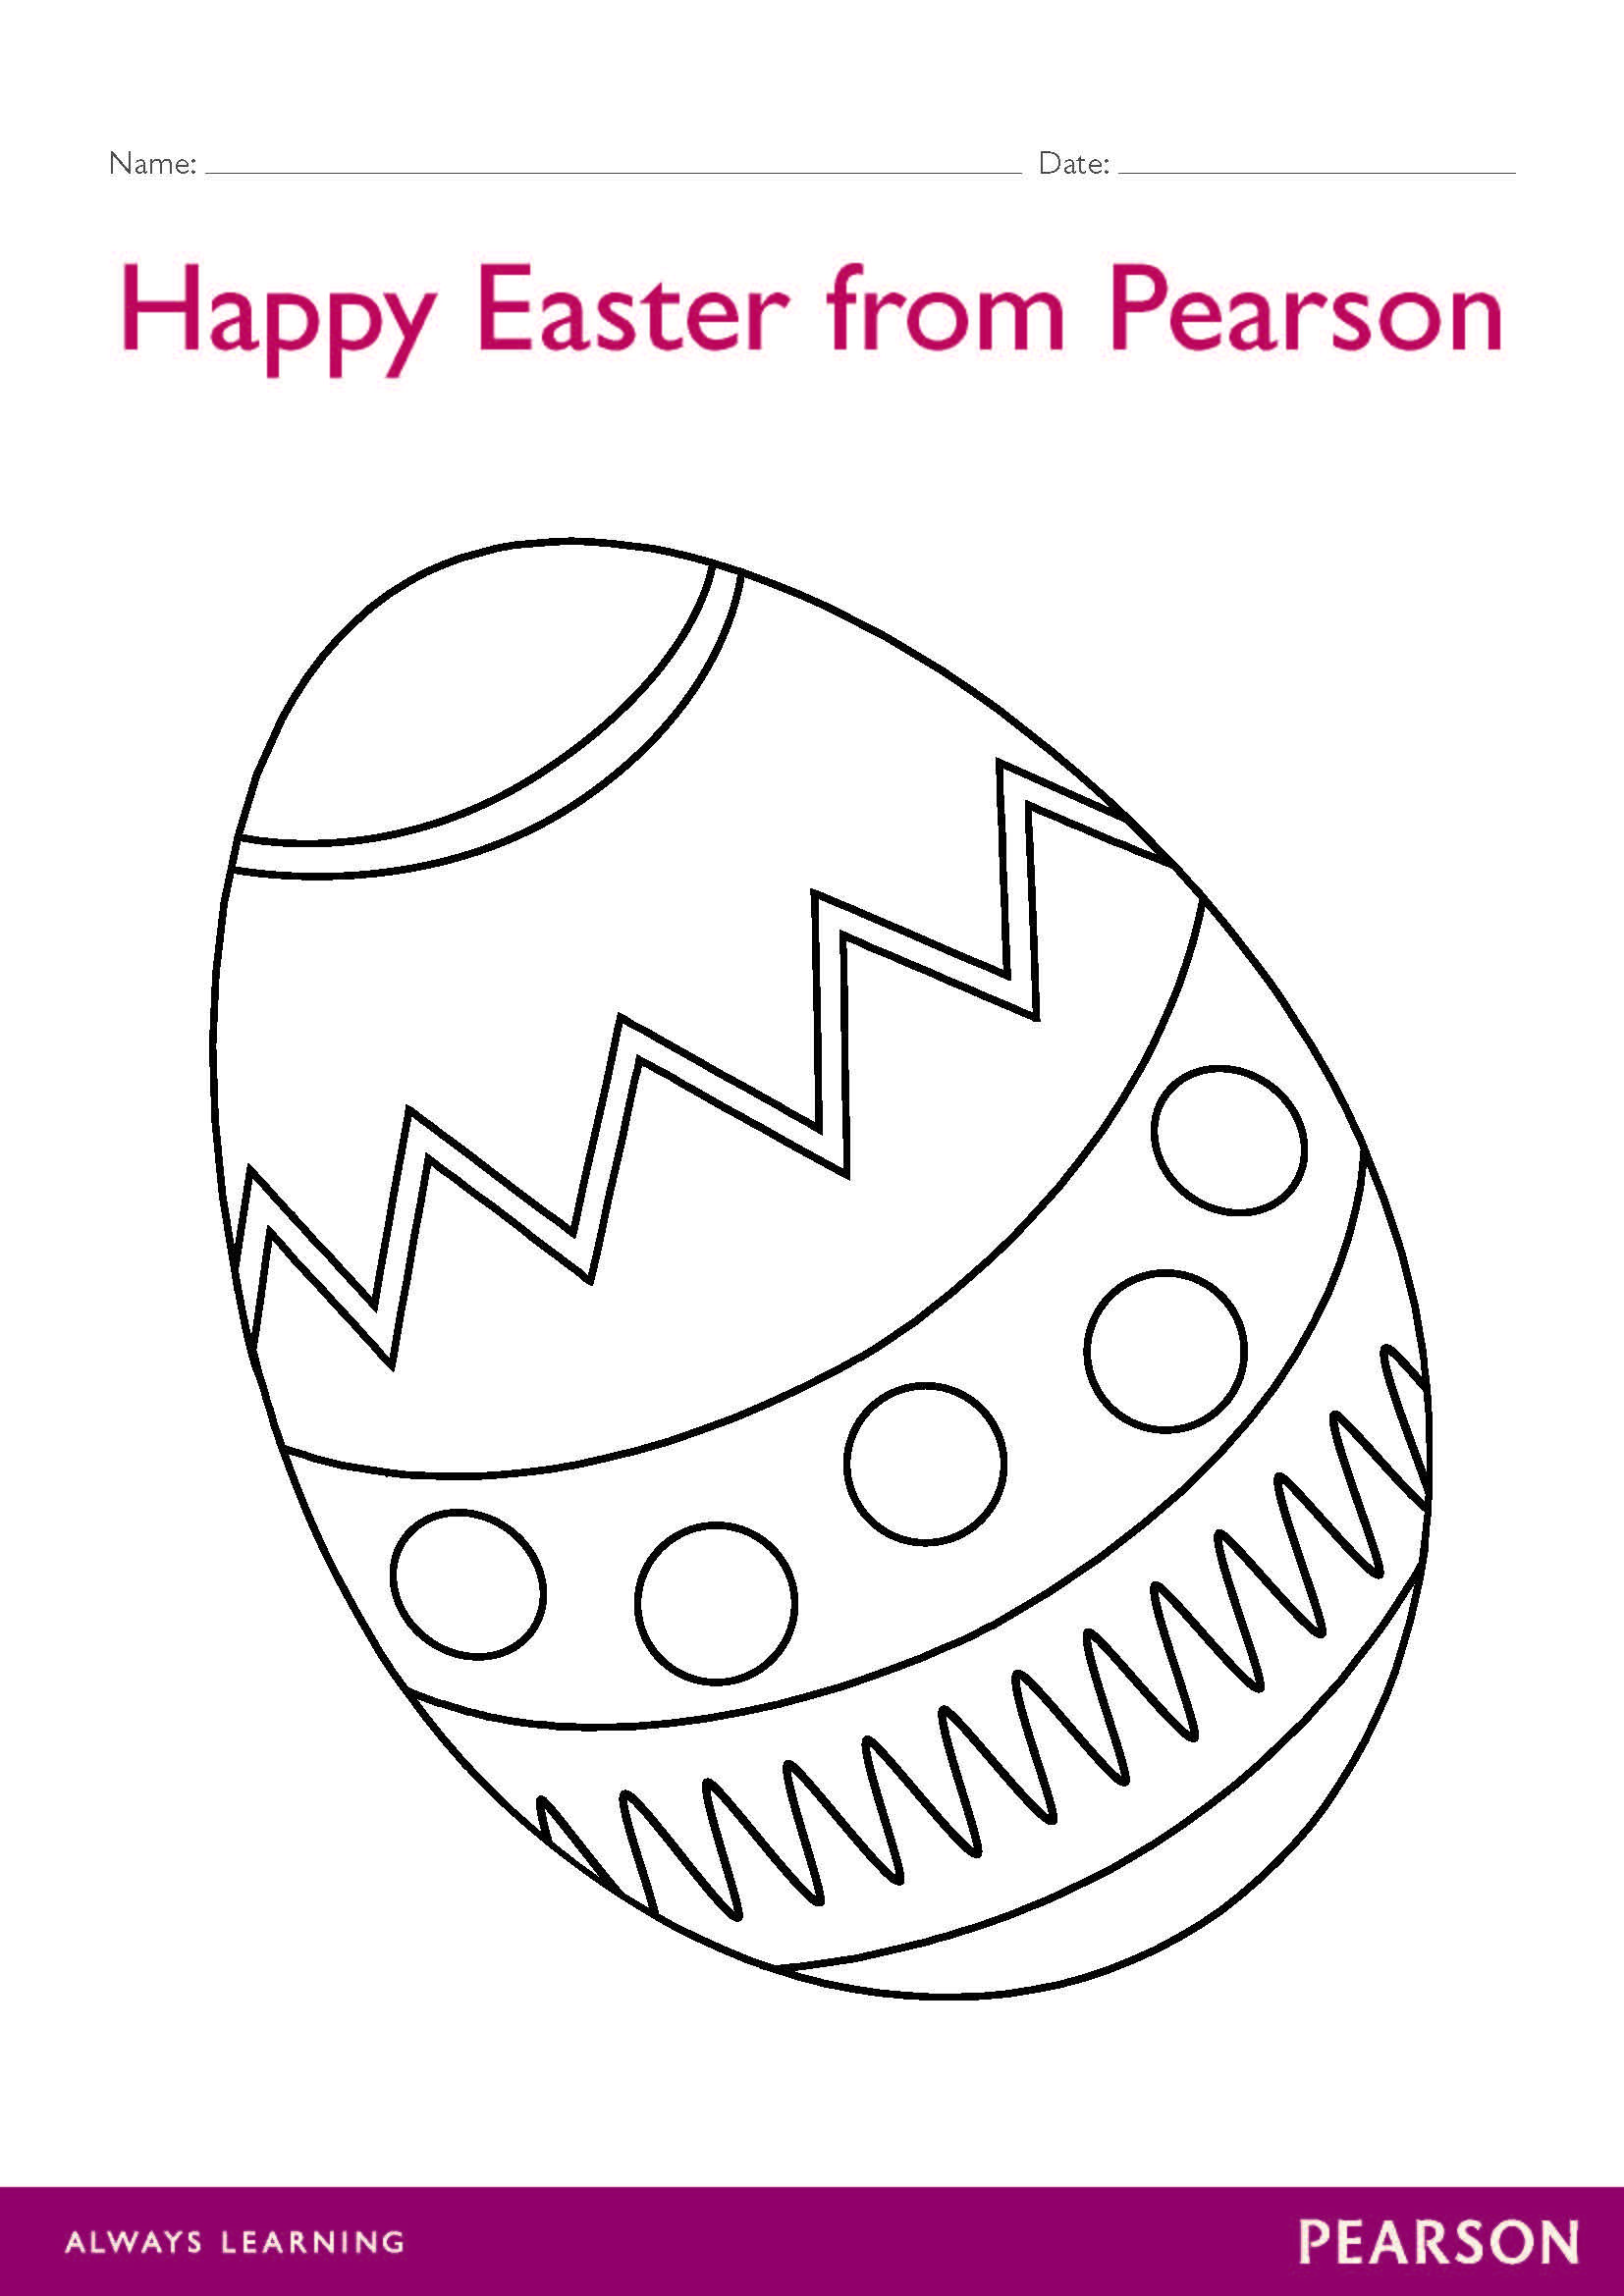 Free Easter Egg Colour In Worksheet Download This Pdf Print It Out And It S Ready For Your Stude Coloring Easter Eggs Coloring Eggs Arts And Crafts For Kids [ 2339 x 1654 Pixel ]